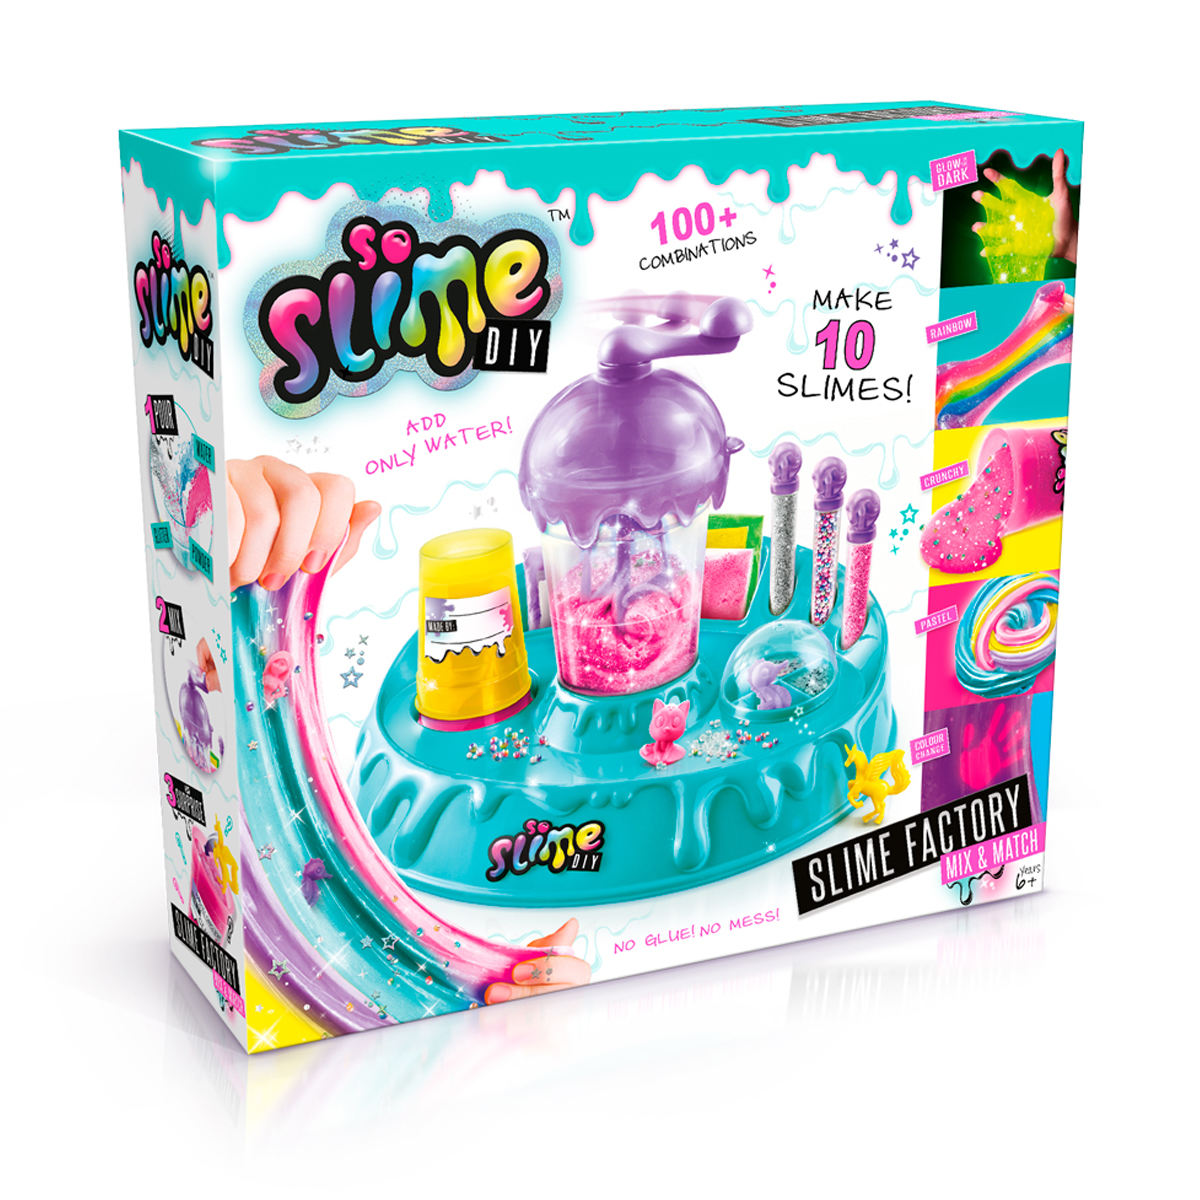 Candle Making Kit Kmart So Slime Diy Slime Factory Kit Kmart